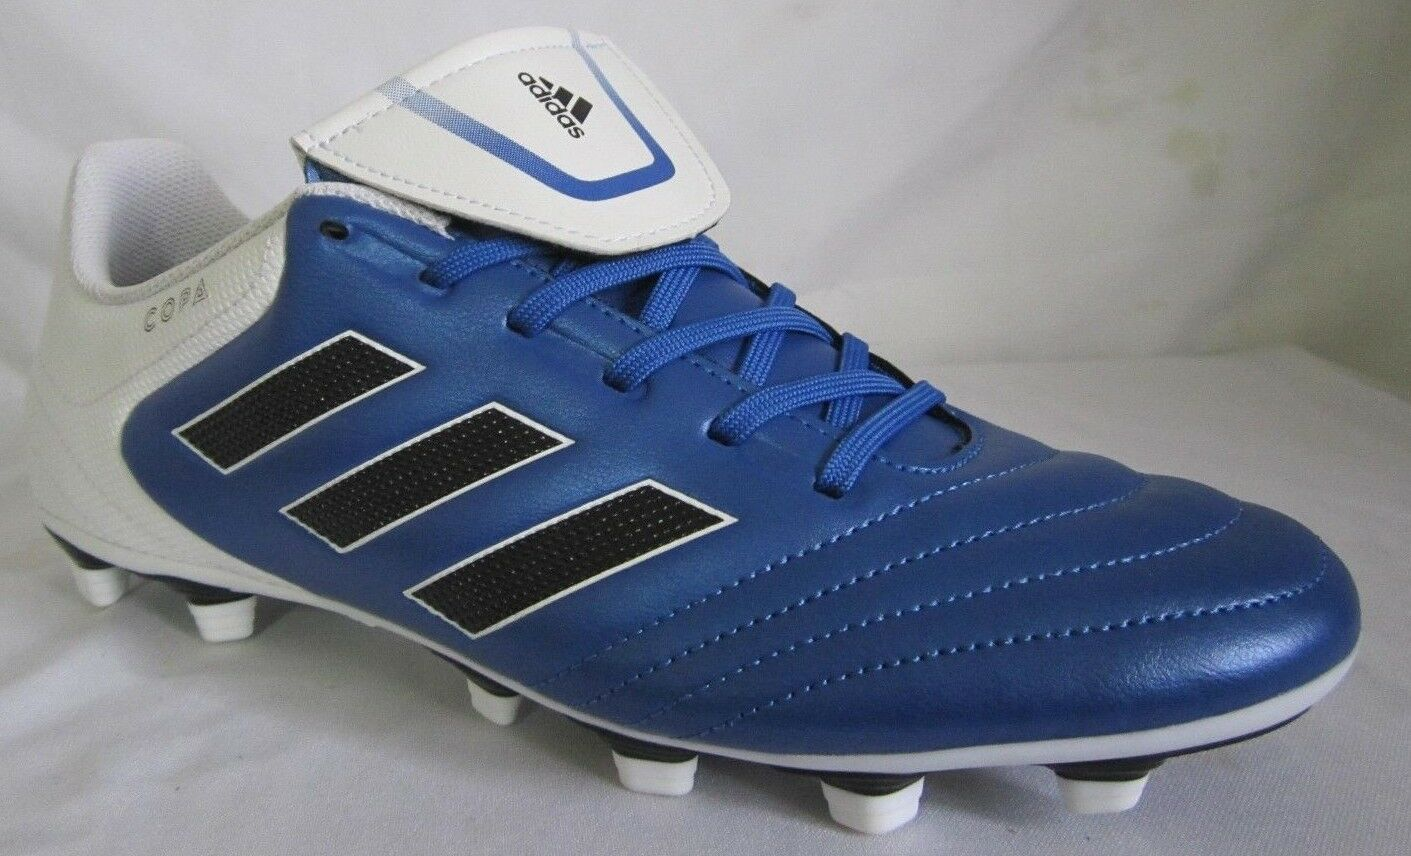 Adidas Copa 17- 4 FxG bluee Cleats Men Soccer shoes 8.5